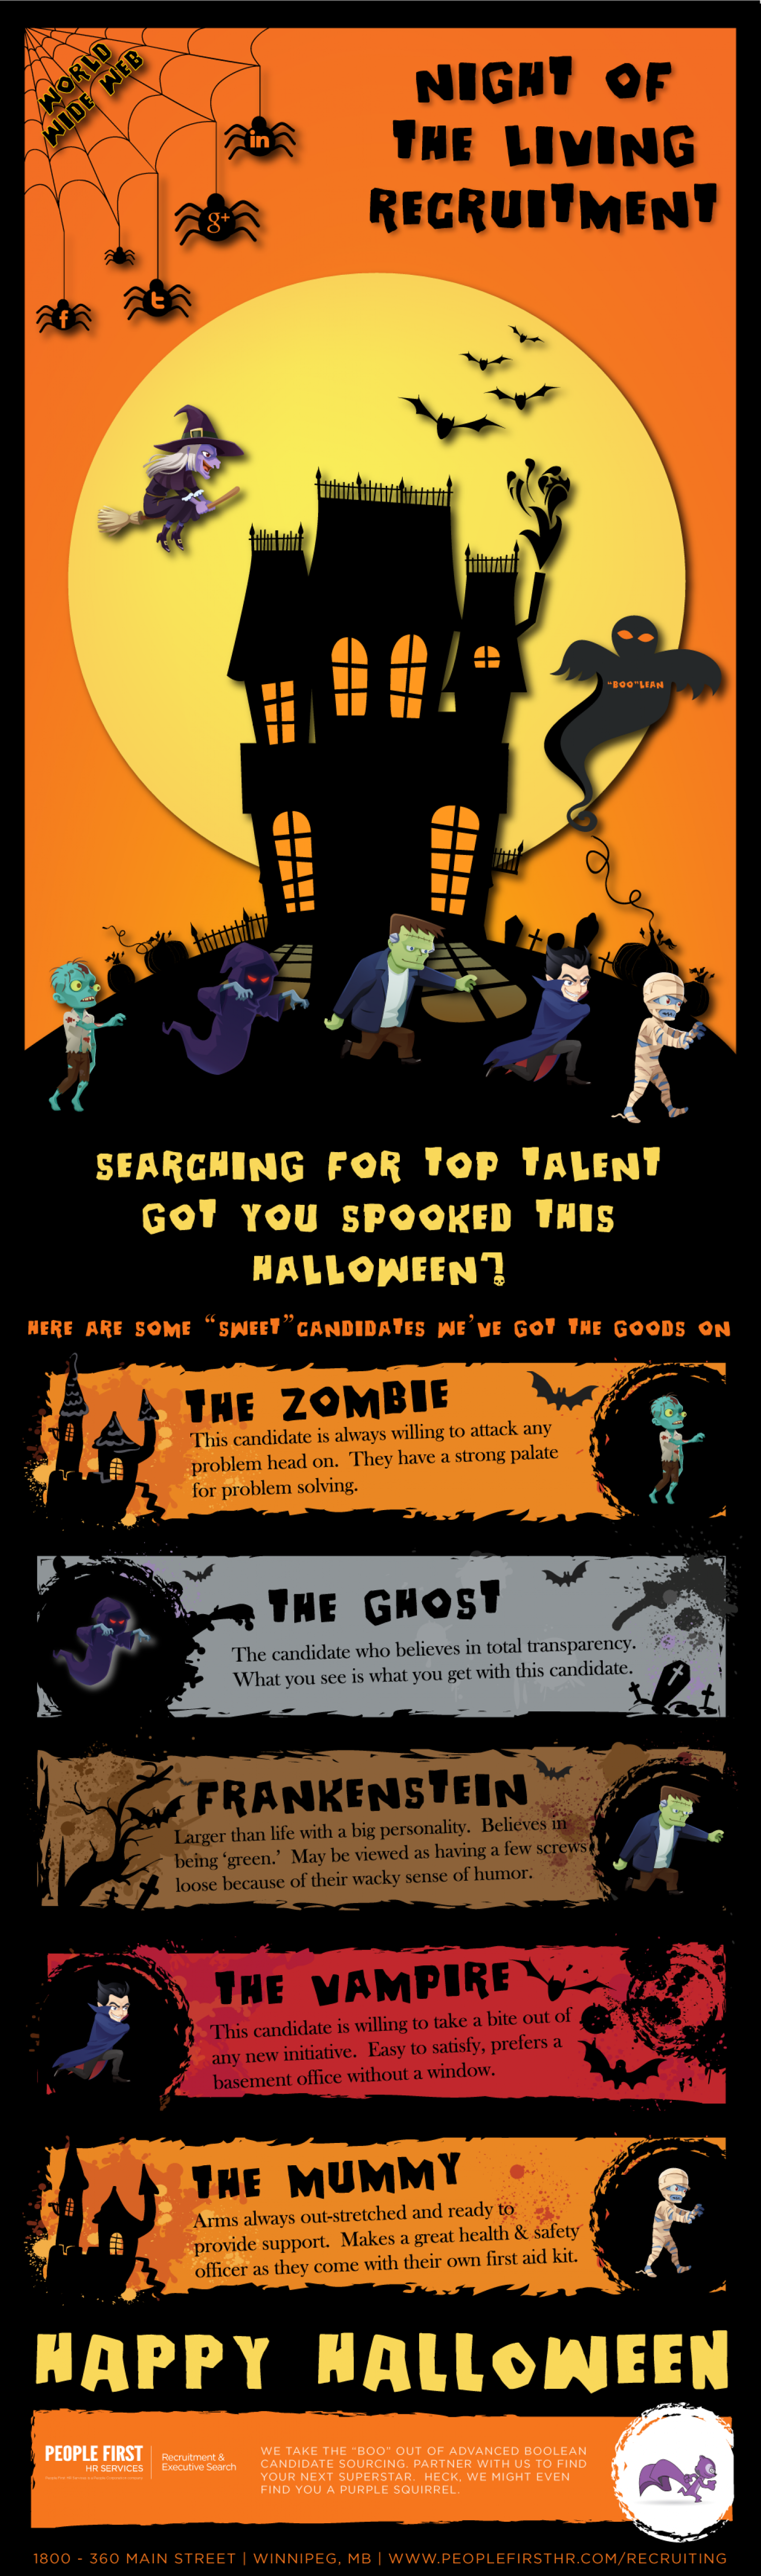 Night of the Living Recruitment Infographic